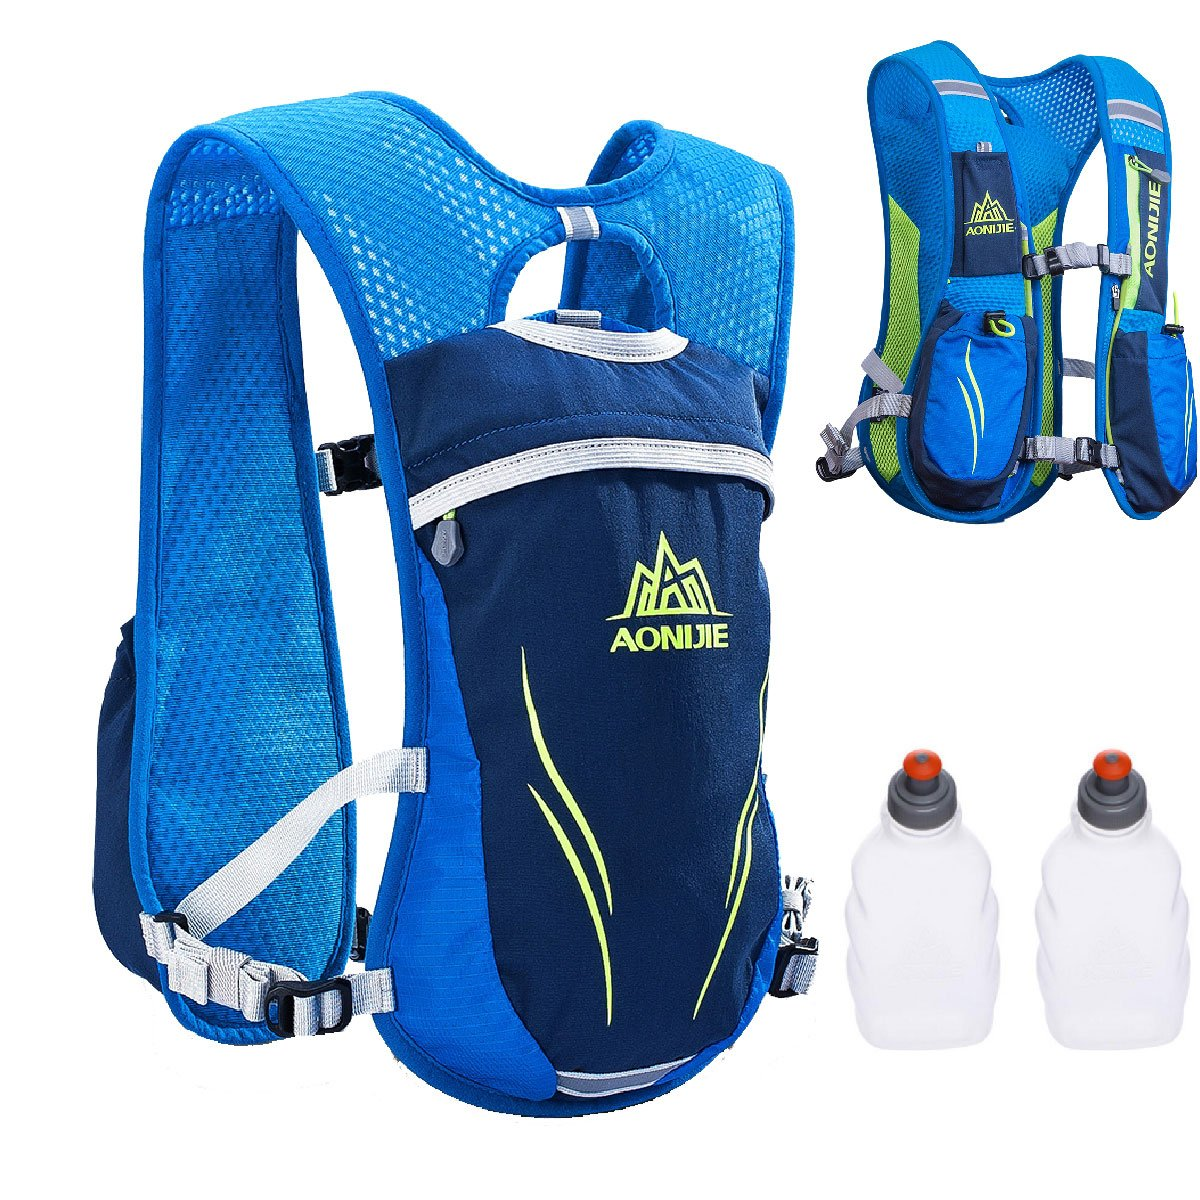 TRIWONDER Hydration Pack Backpack 5.5L Outdoors Mochilas Trail Marathoner Running Race Hydration Vest (Blue - with 2 Water Bottles)